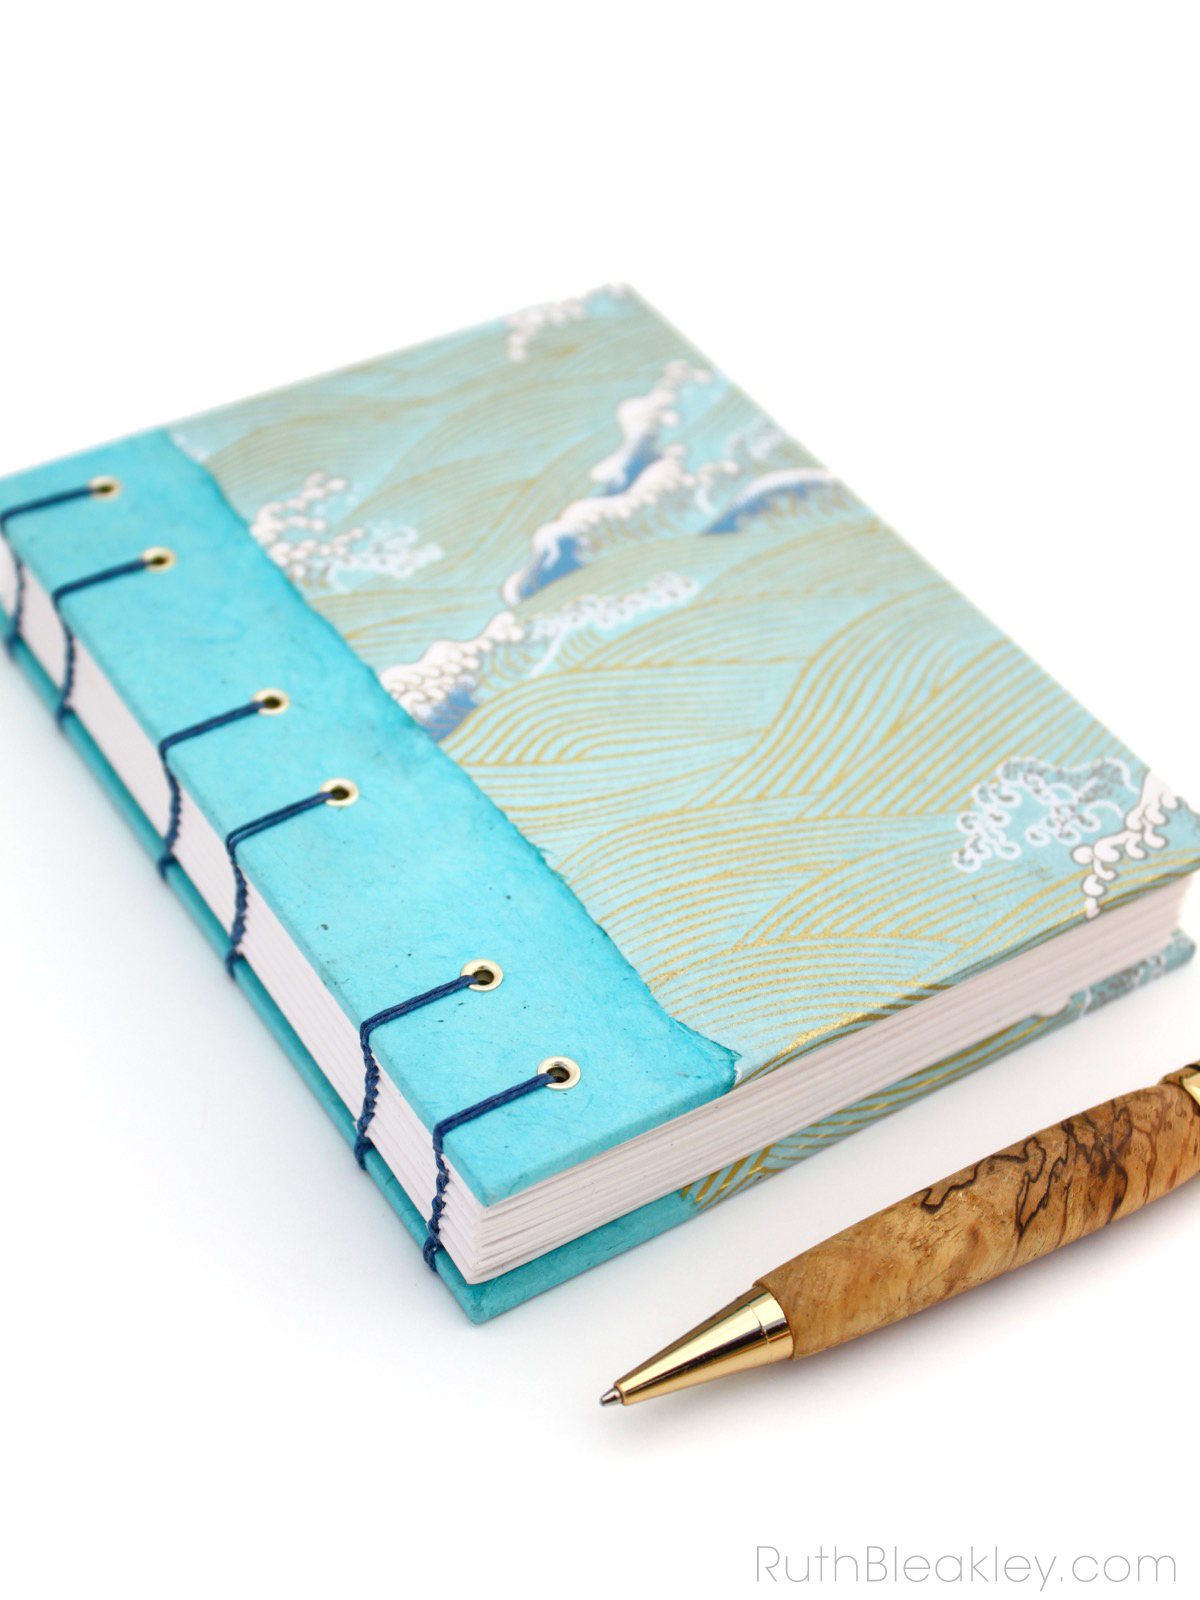 Waves journal by Ruth Bleakley with coptic stitch binding - 1